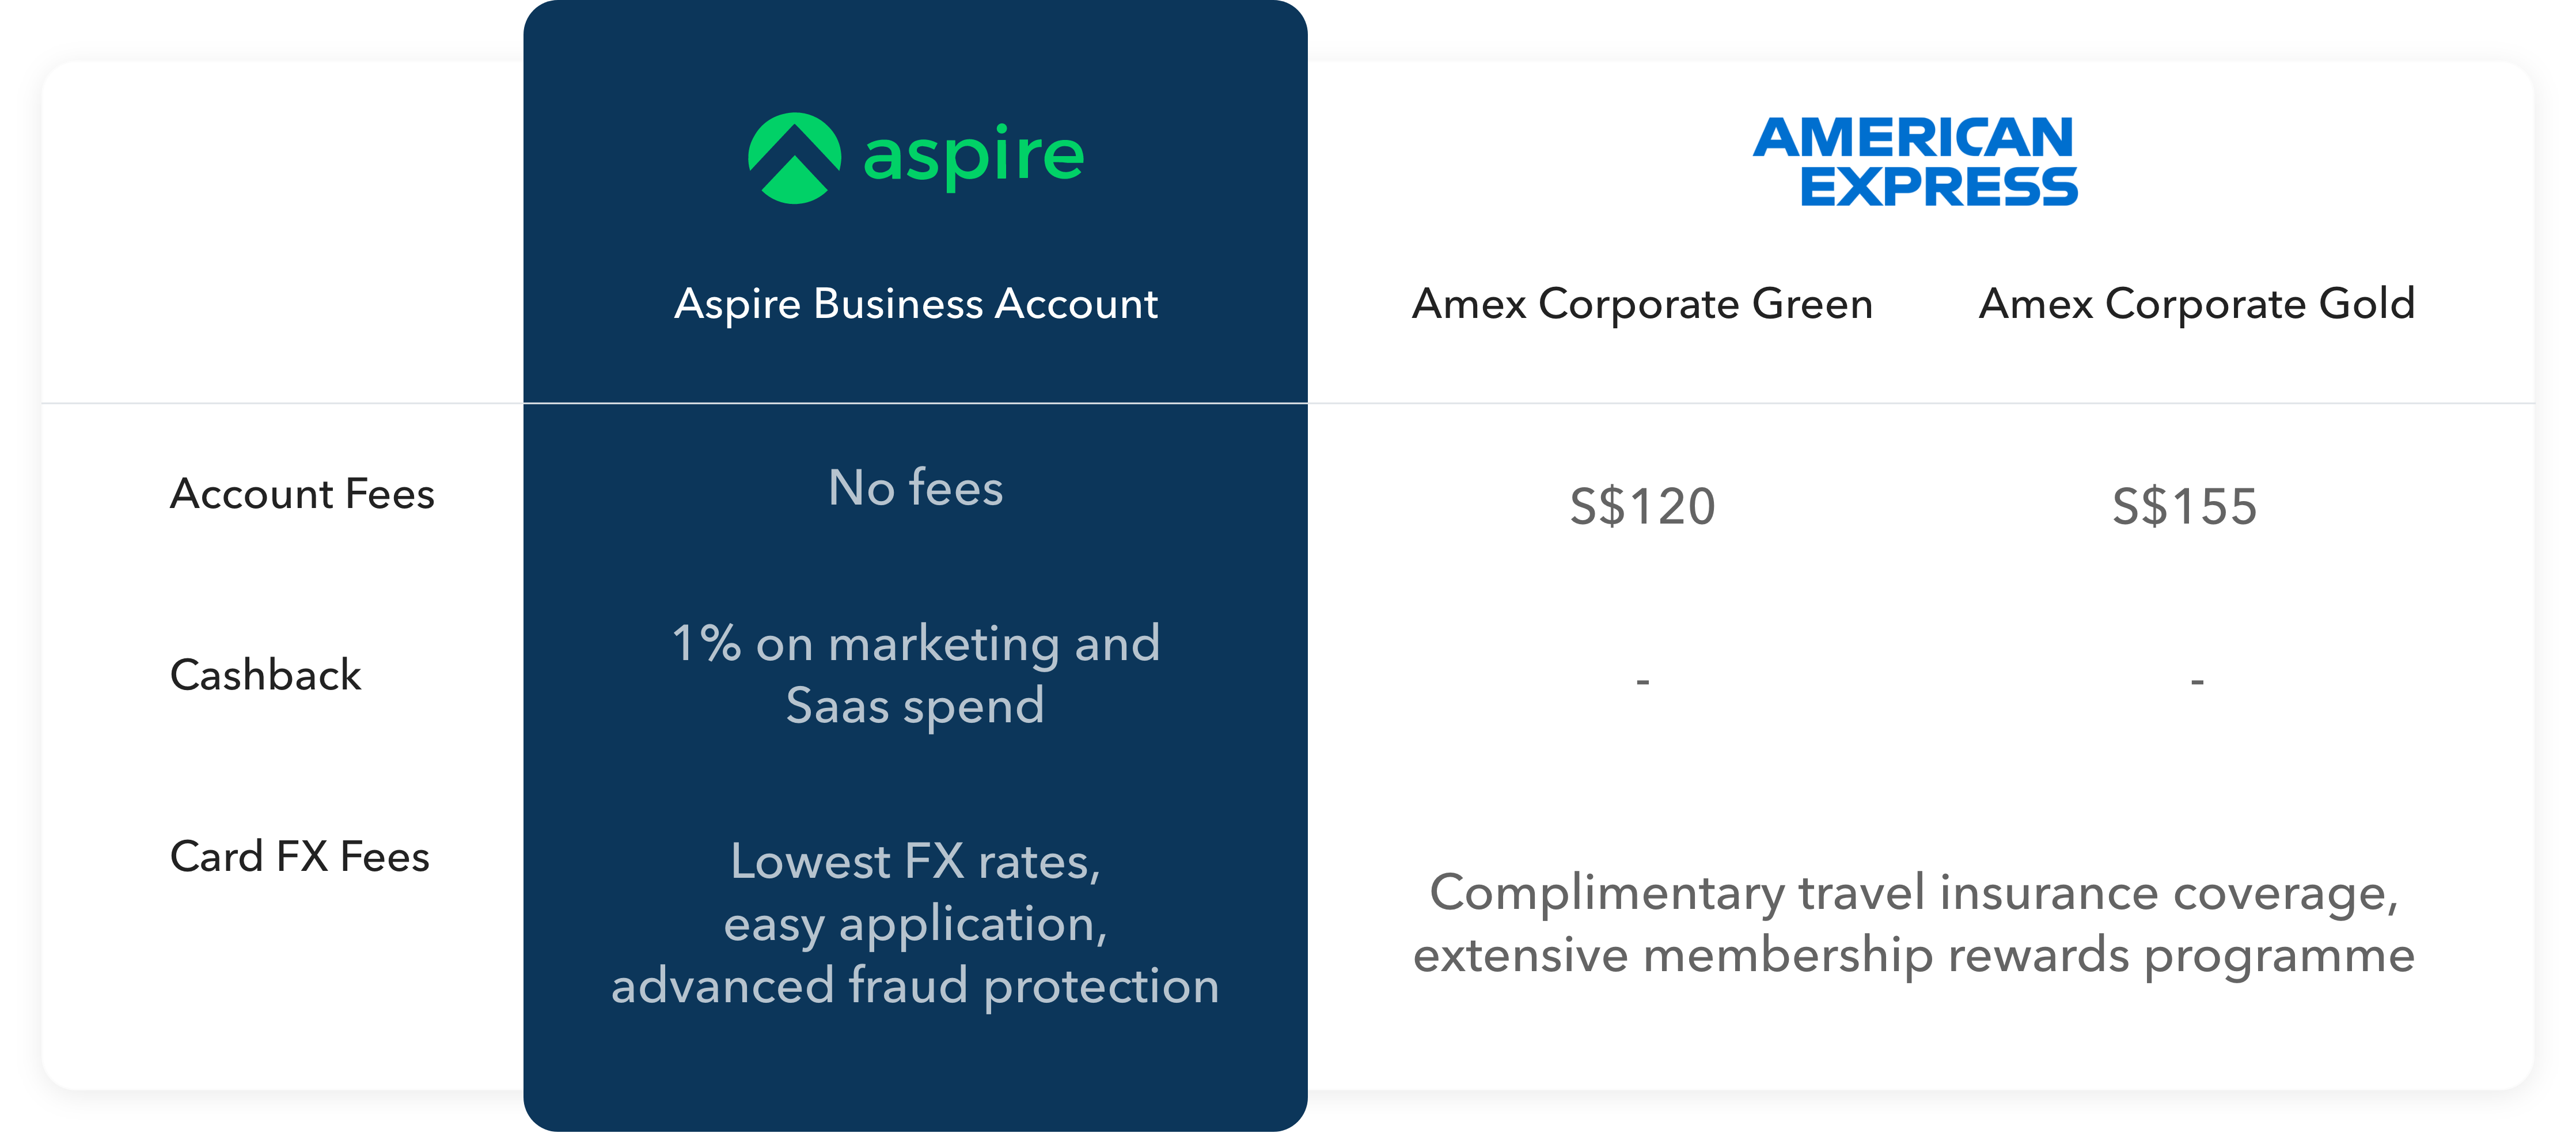 Amex Corporate Green card and Gold vs Aspire